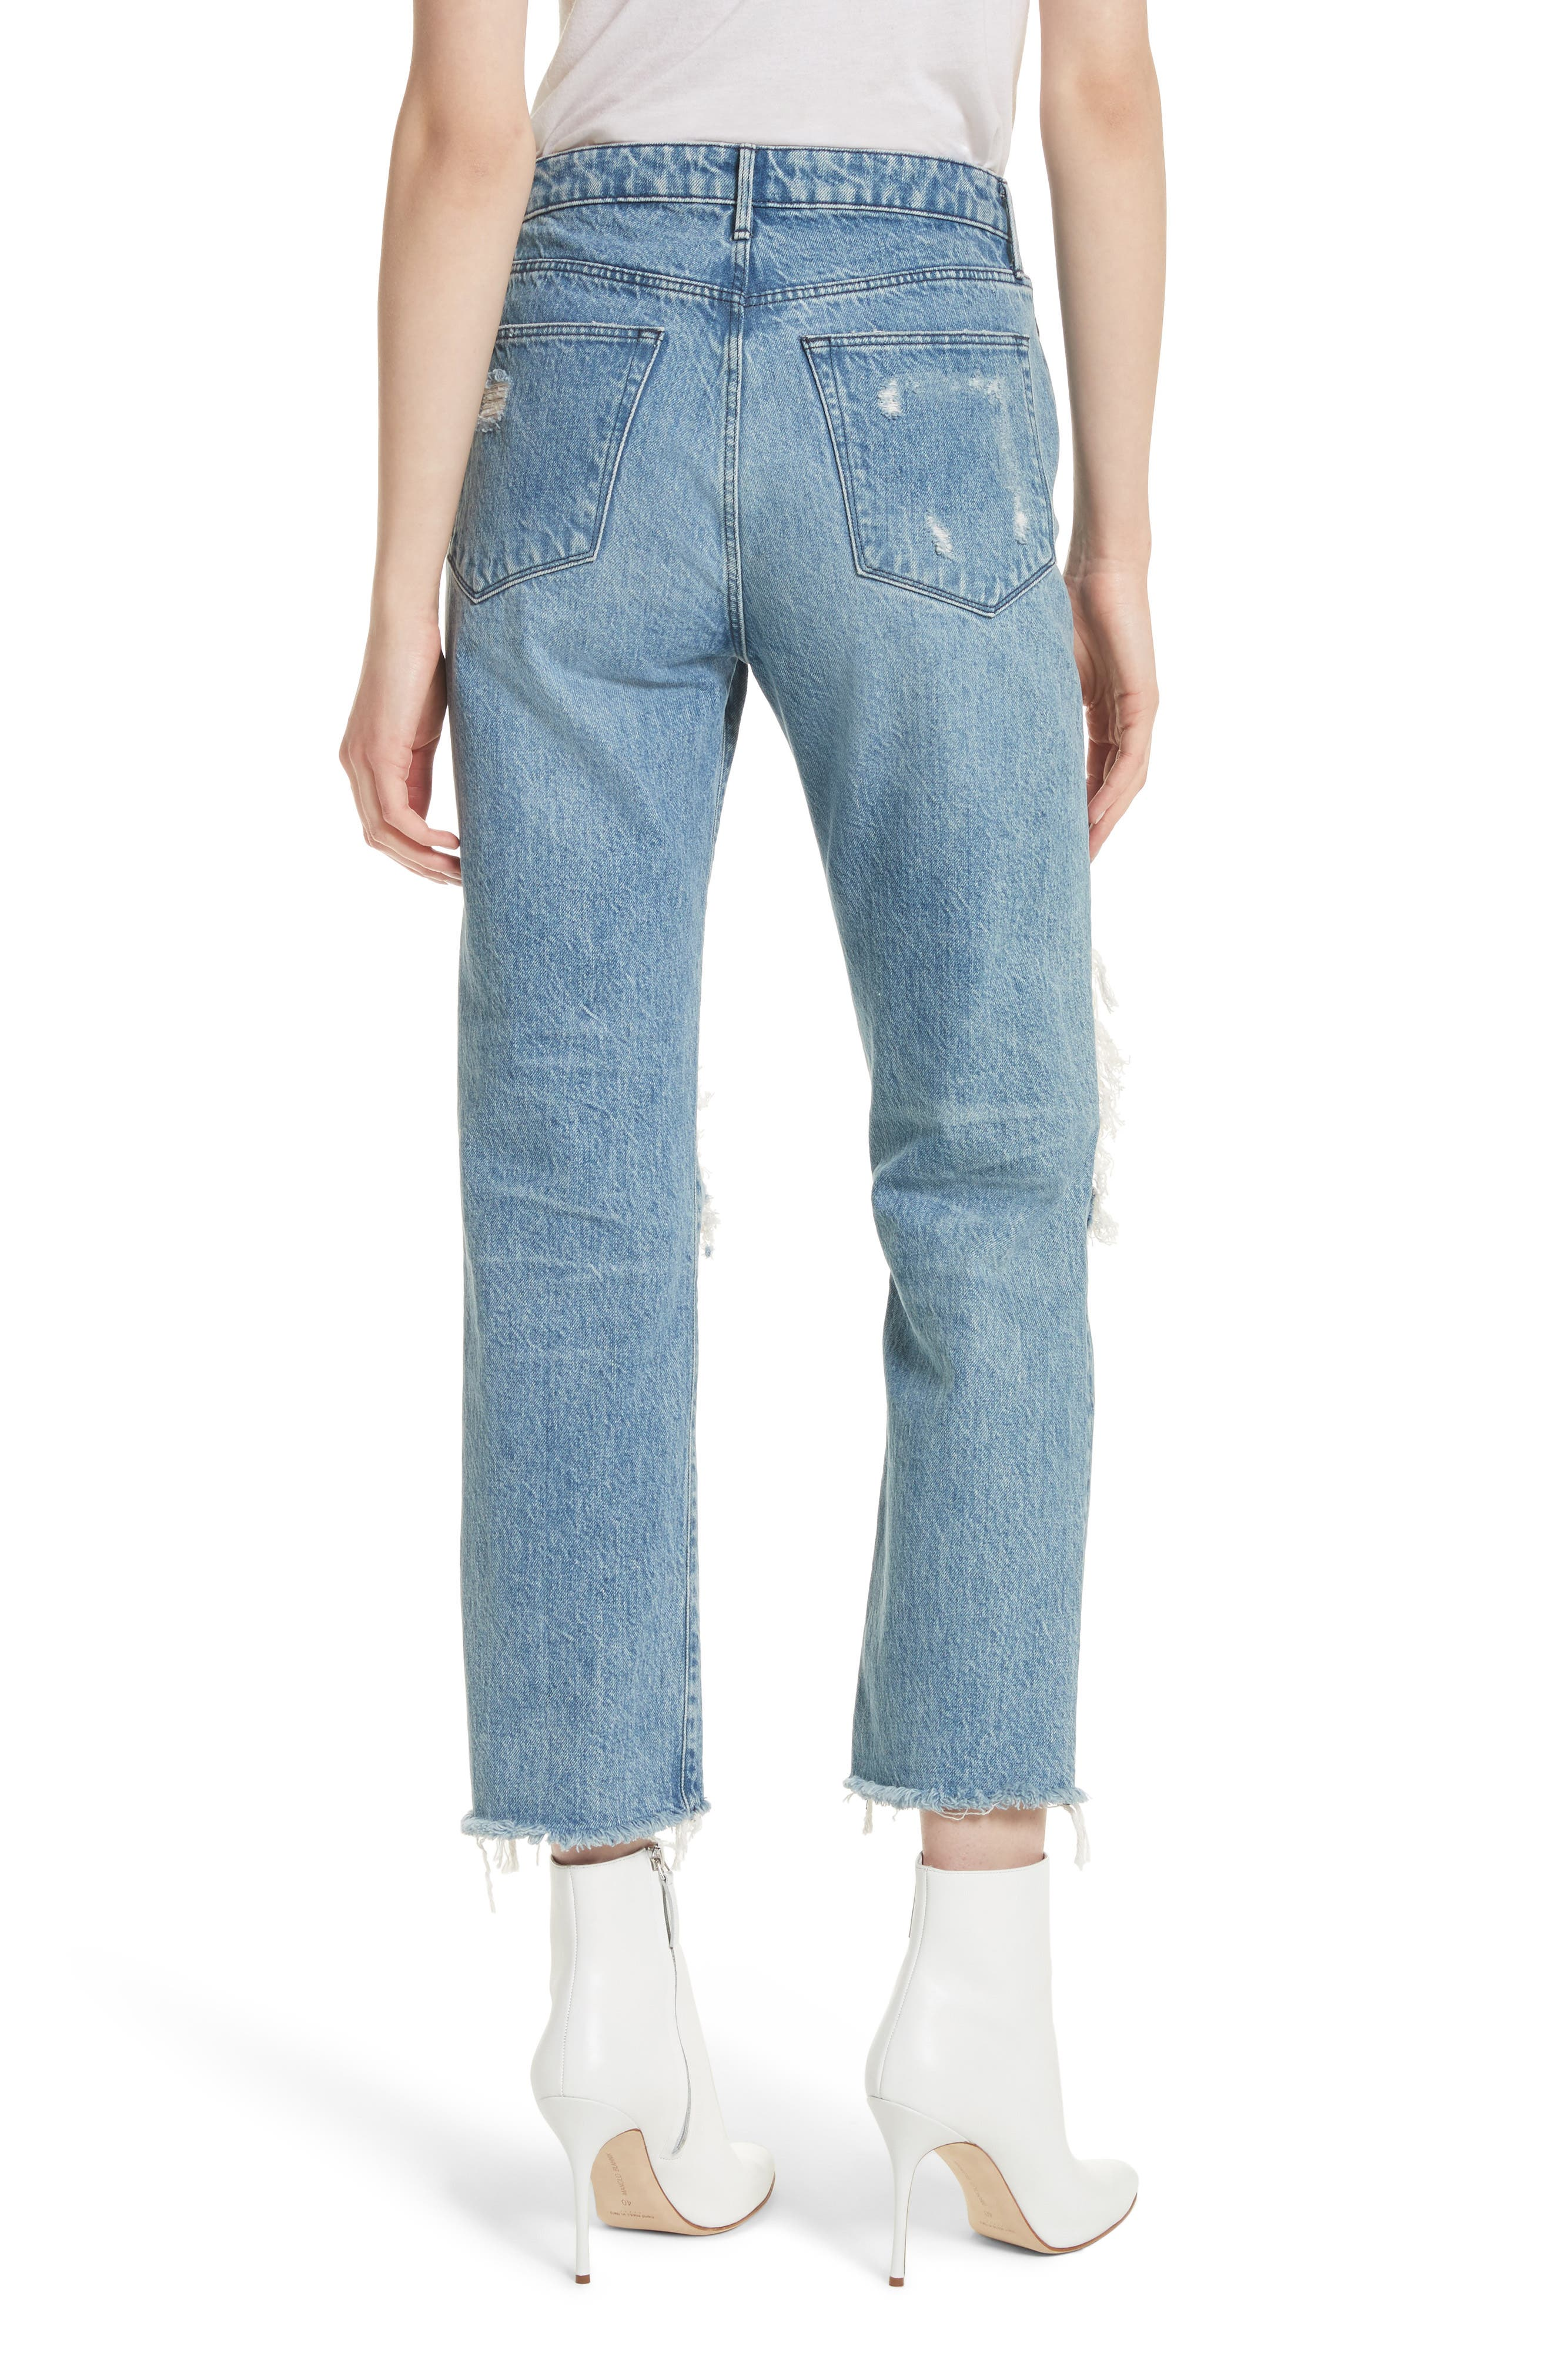 W3 Higher Ground Ripped Crop Boyfriend Jeans,                             Alternate thumbnail 2, color,                             Clutch